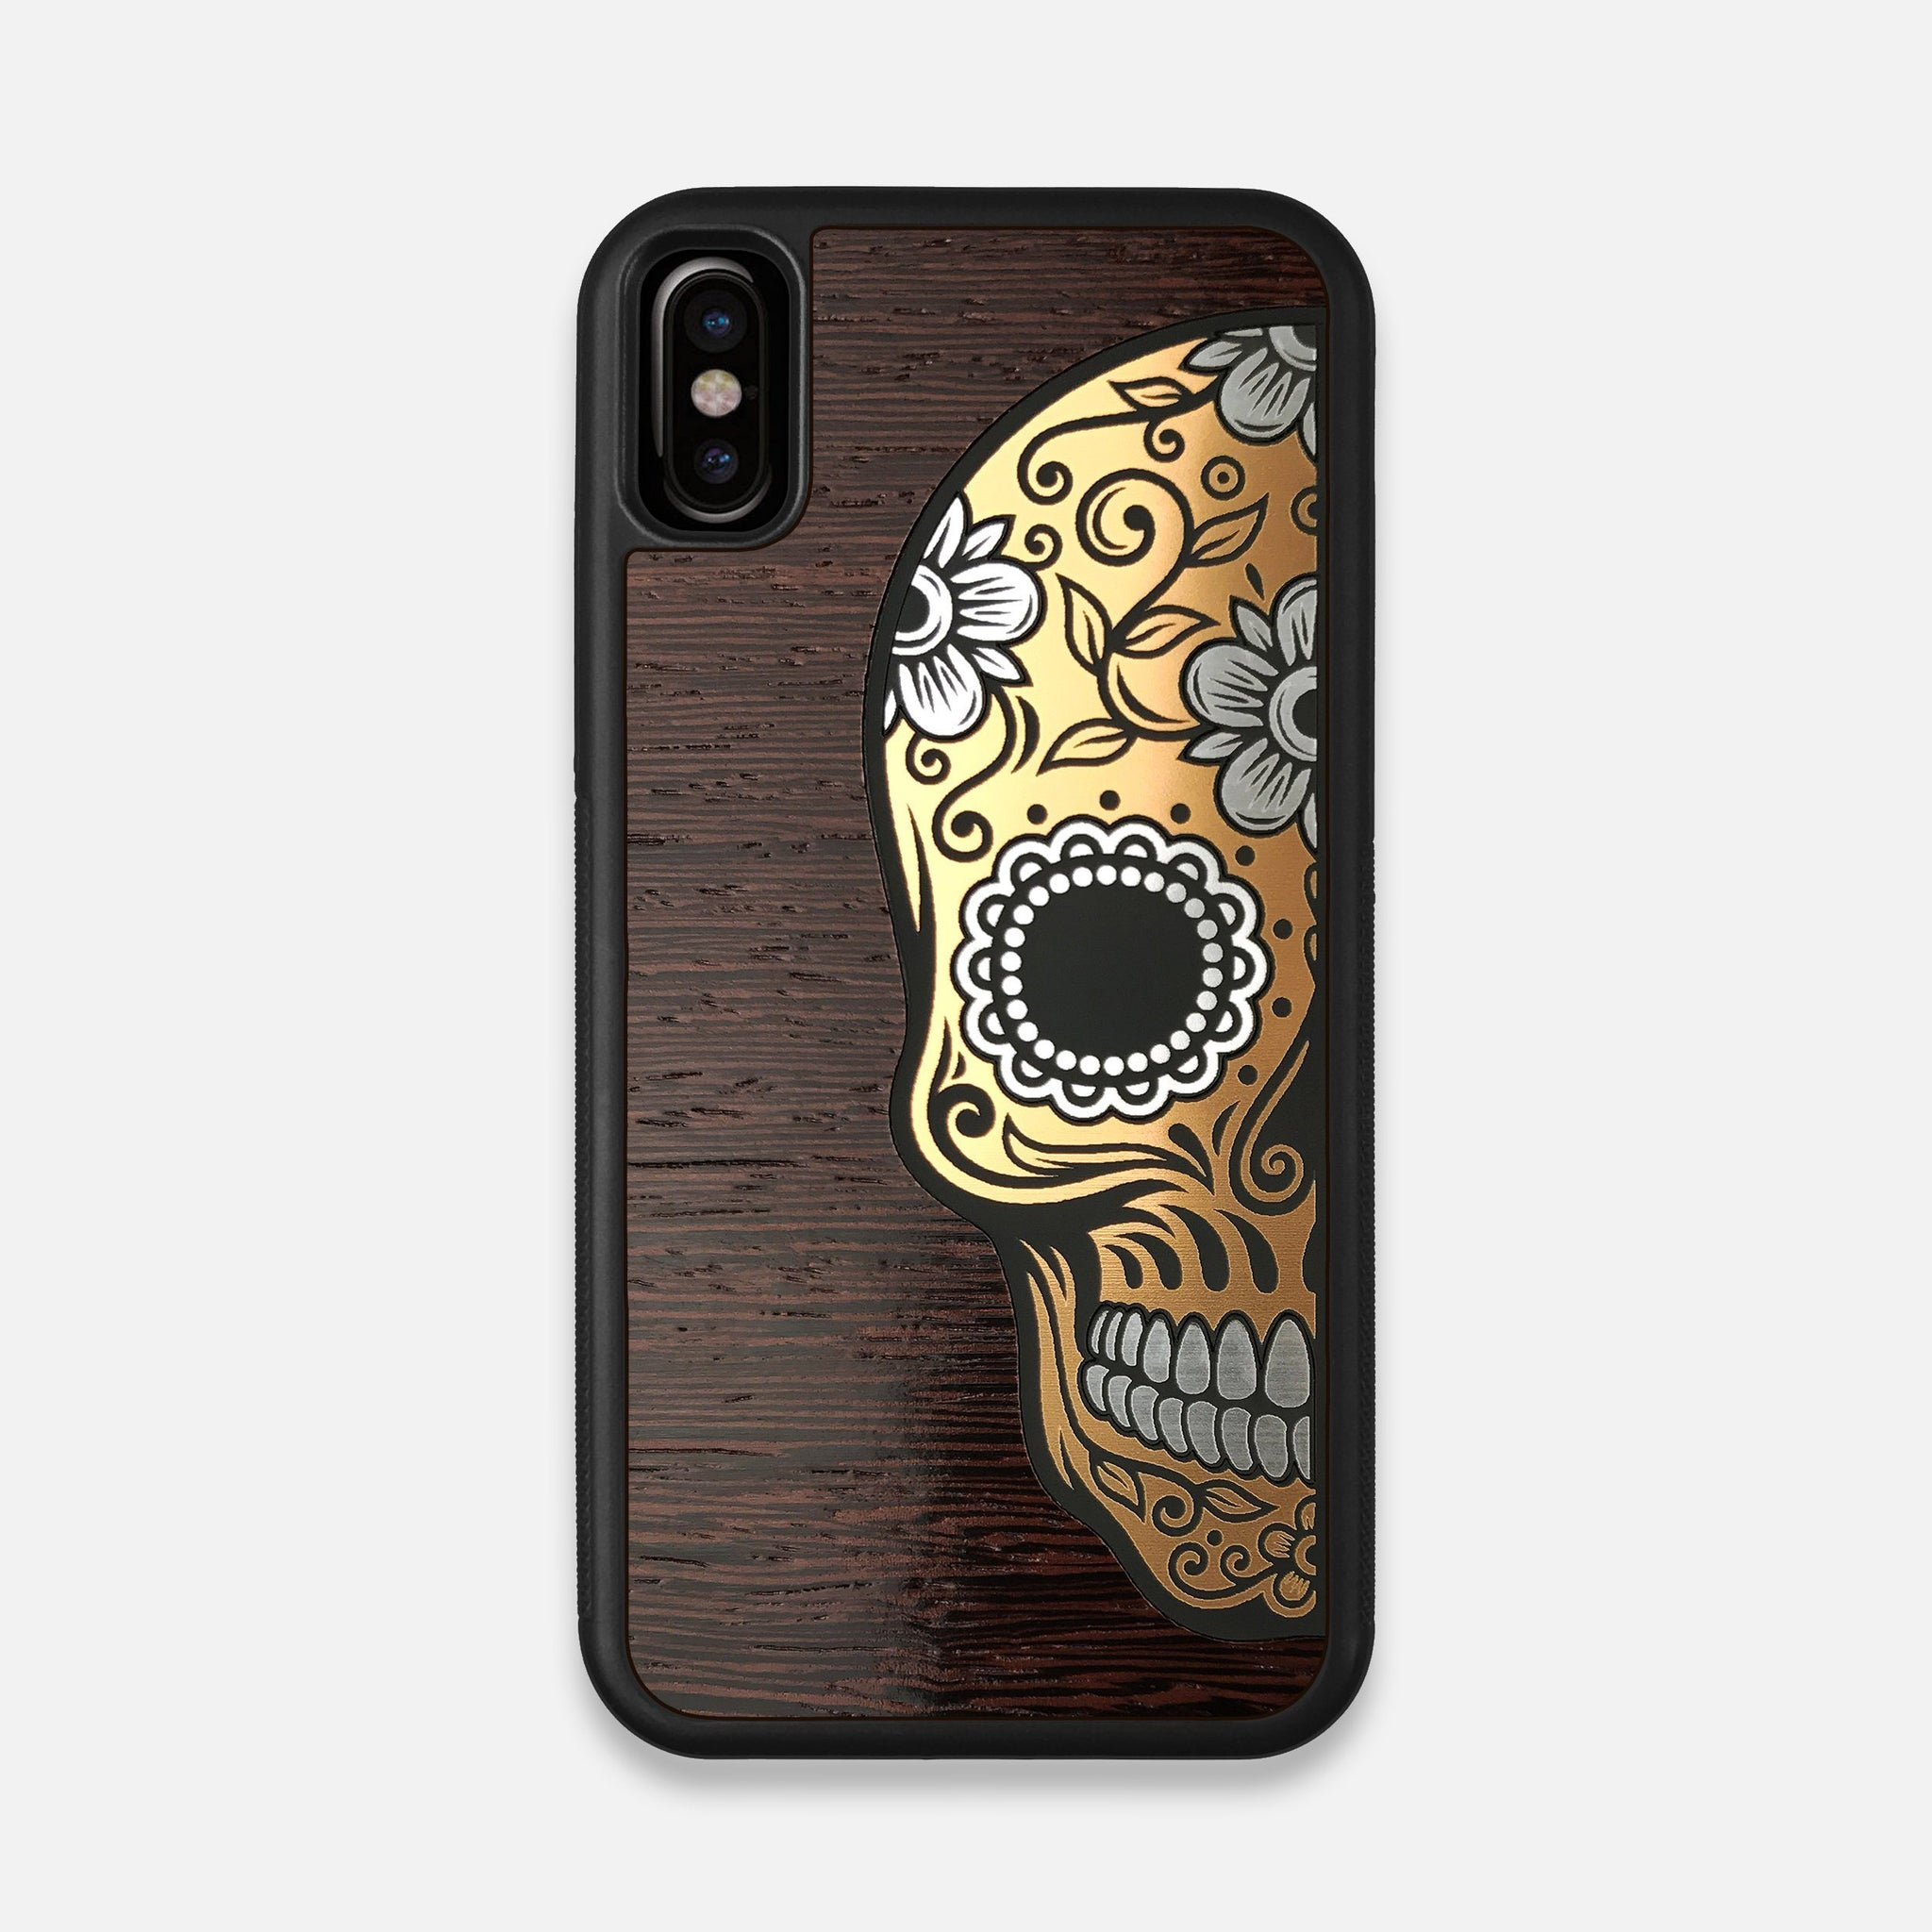 Front view of the Calavera Wood Sugar Skull Wood iPhone X Case by Keyway Designs